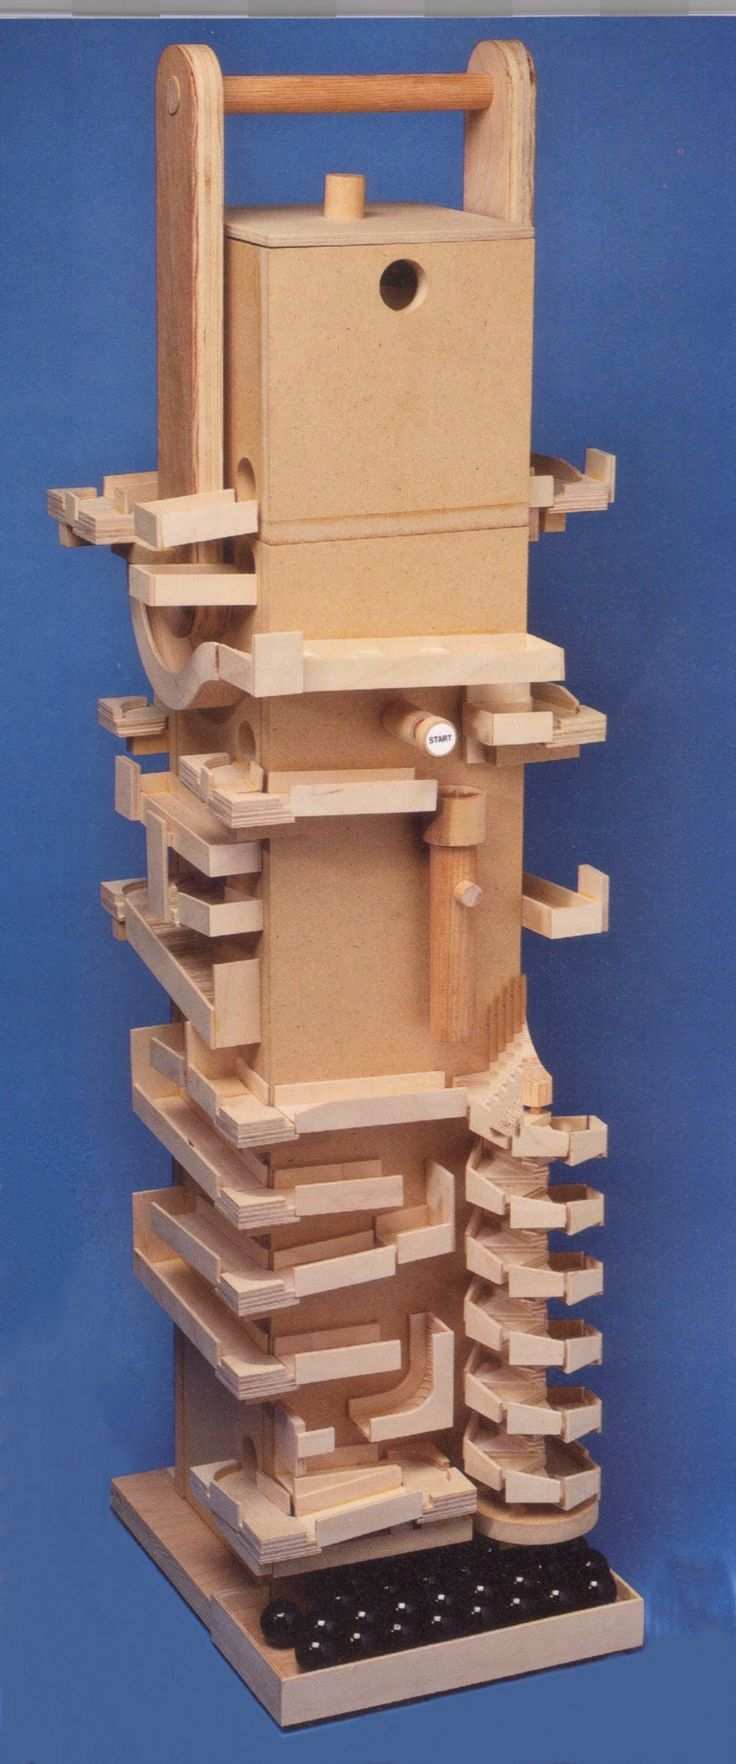 17 Best Images About Marble Machine On Pinterest Toys